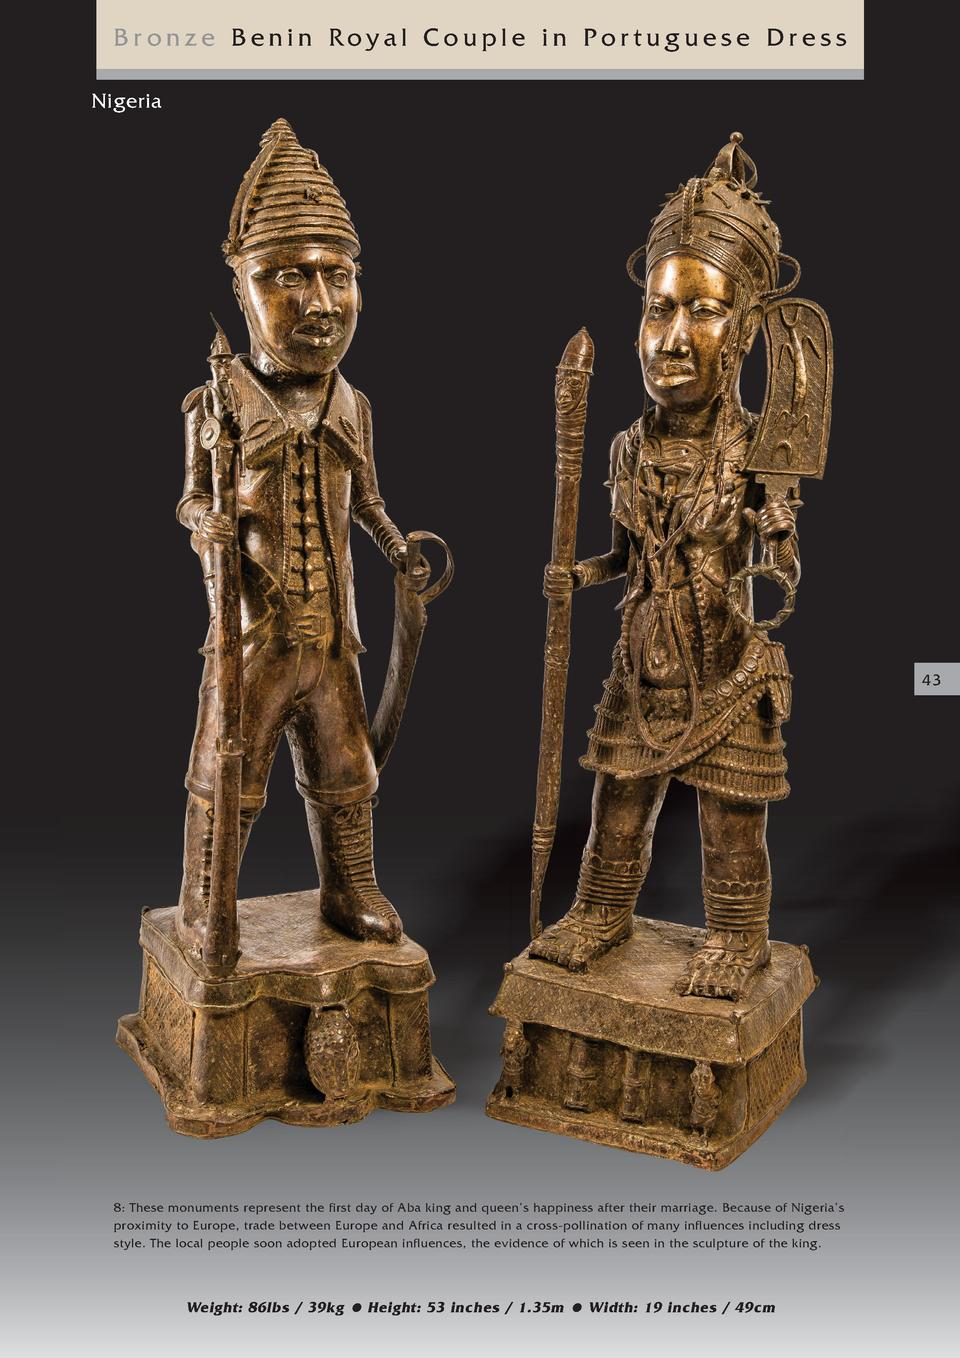 Bronze Benin Royal Couple in Portuguese Dress Nigeria  43  8  These monuments represent the first day of Aba king and quee...